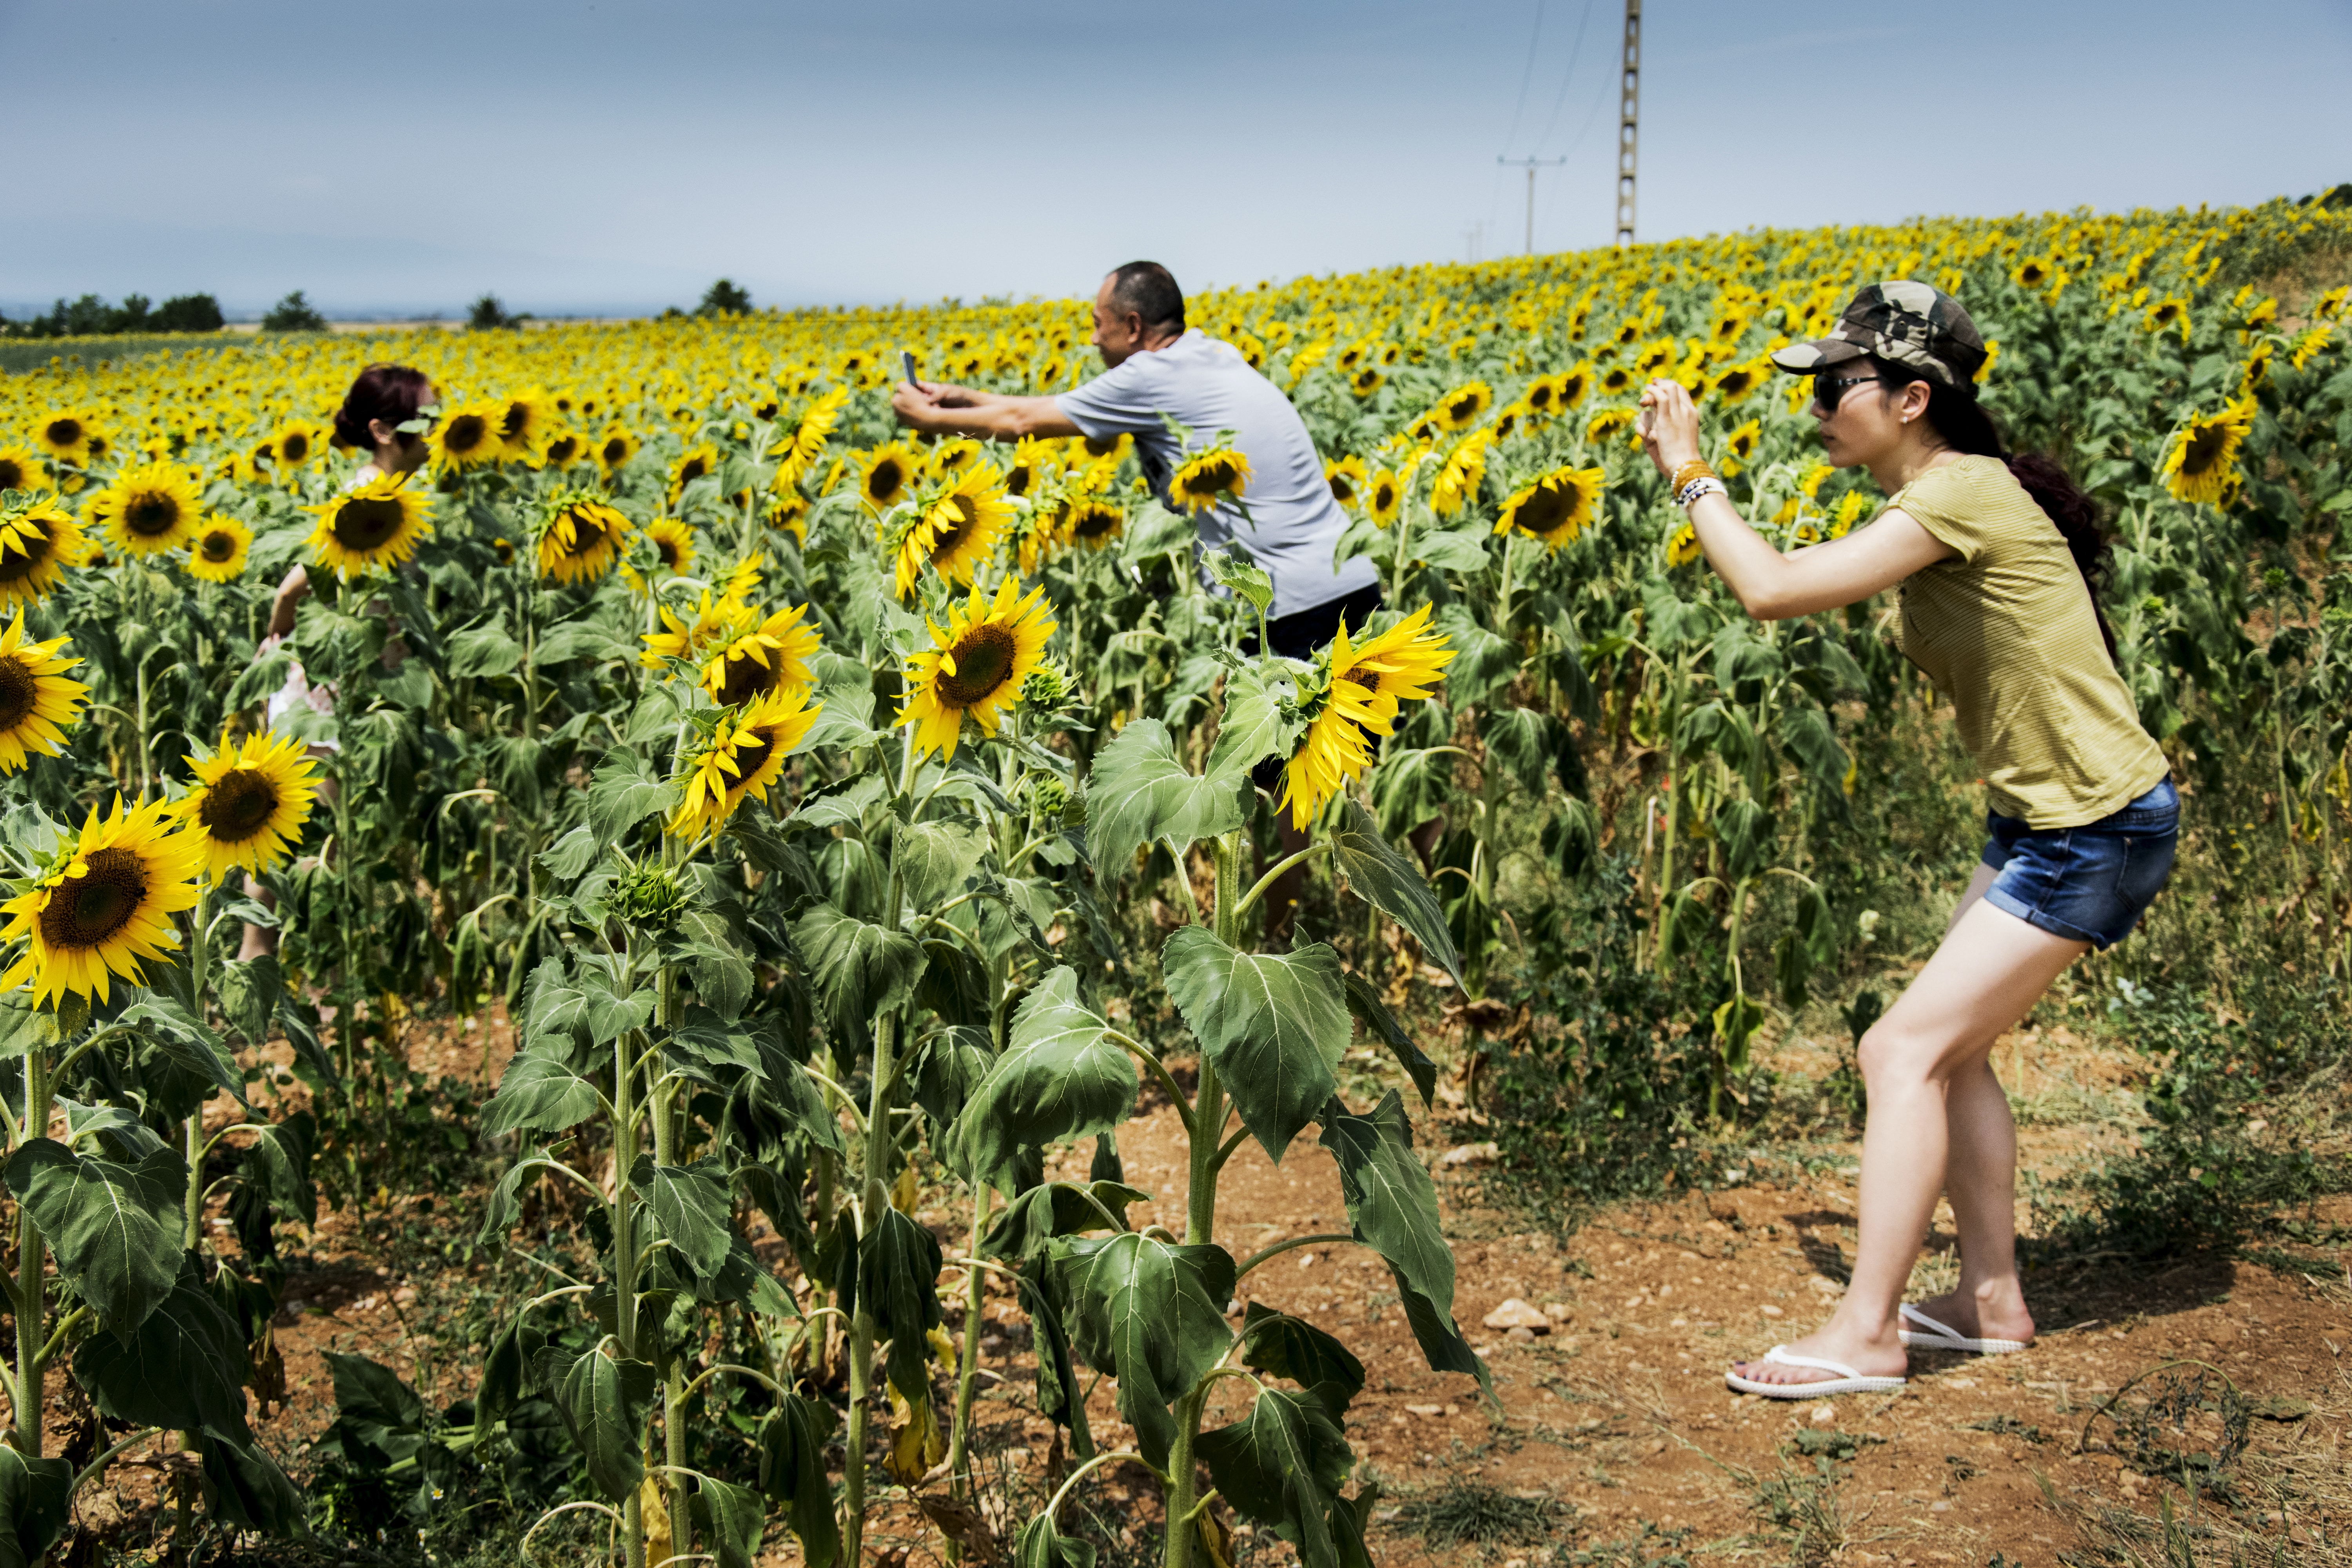 People taking photos in a sunflower field in Vaucluse during summer